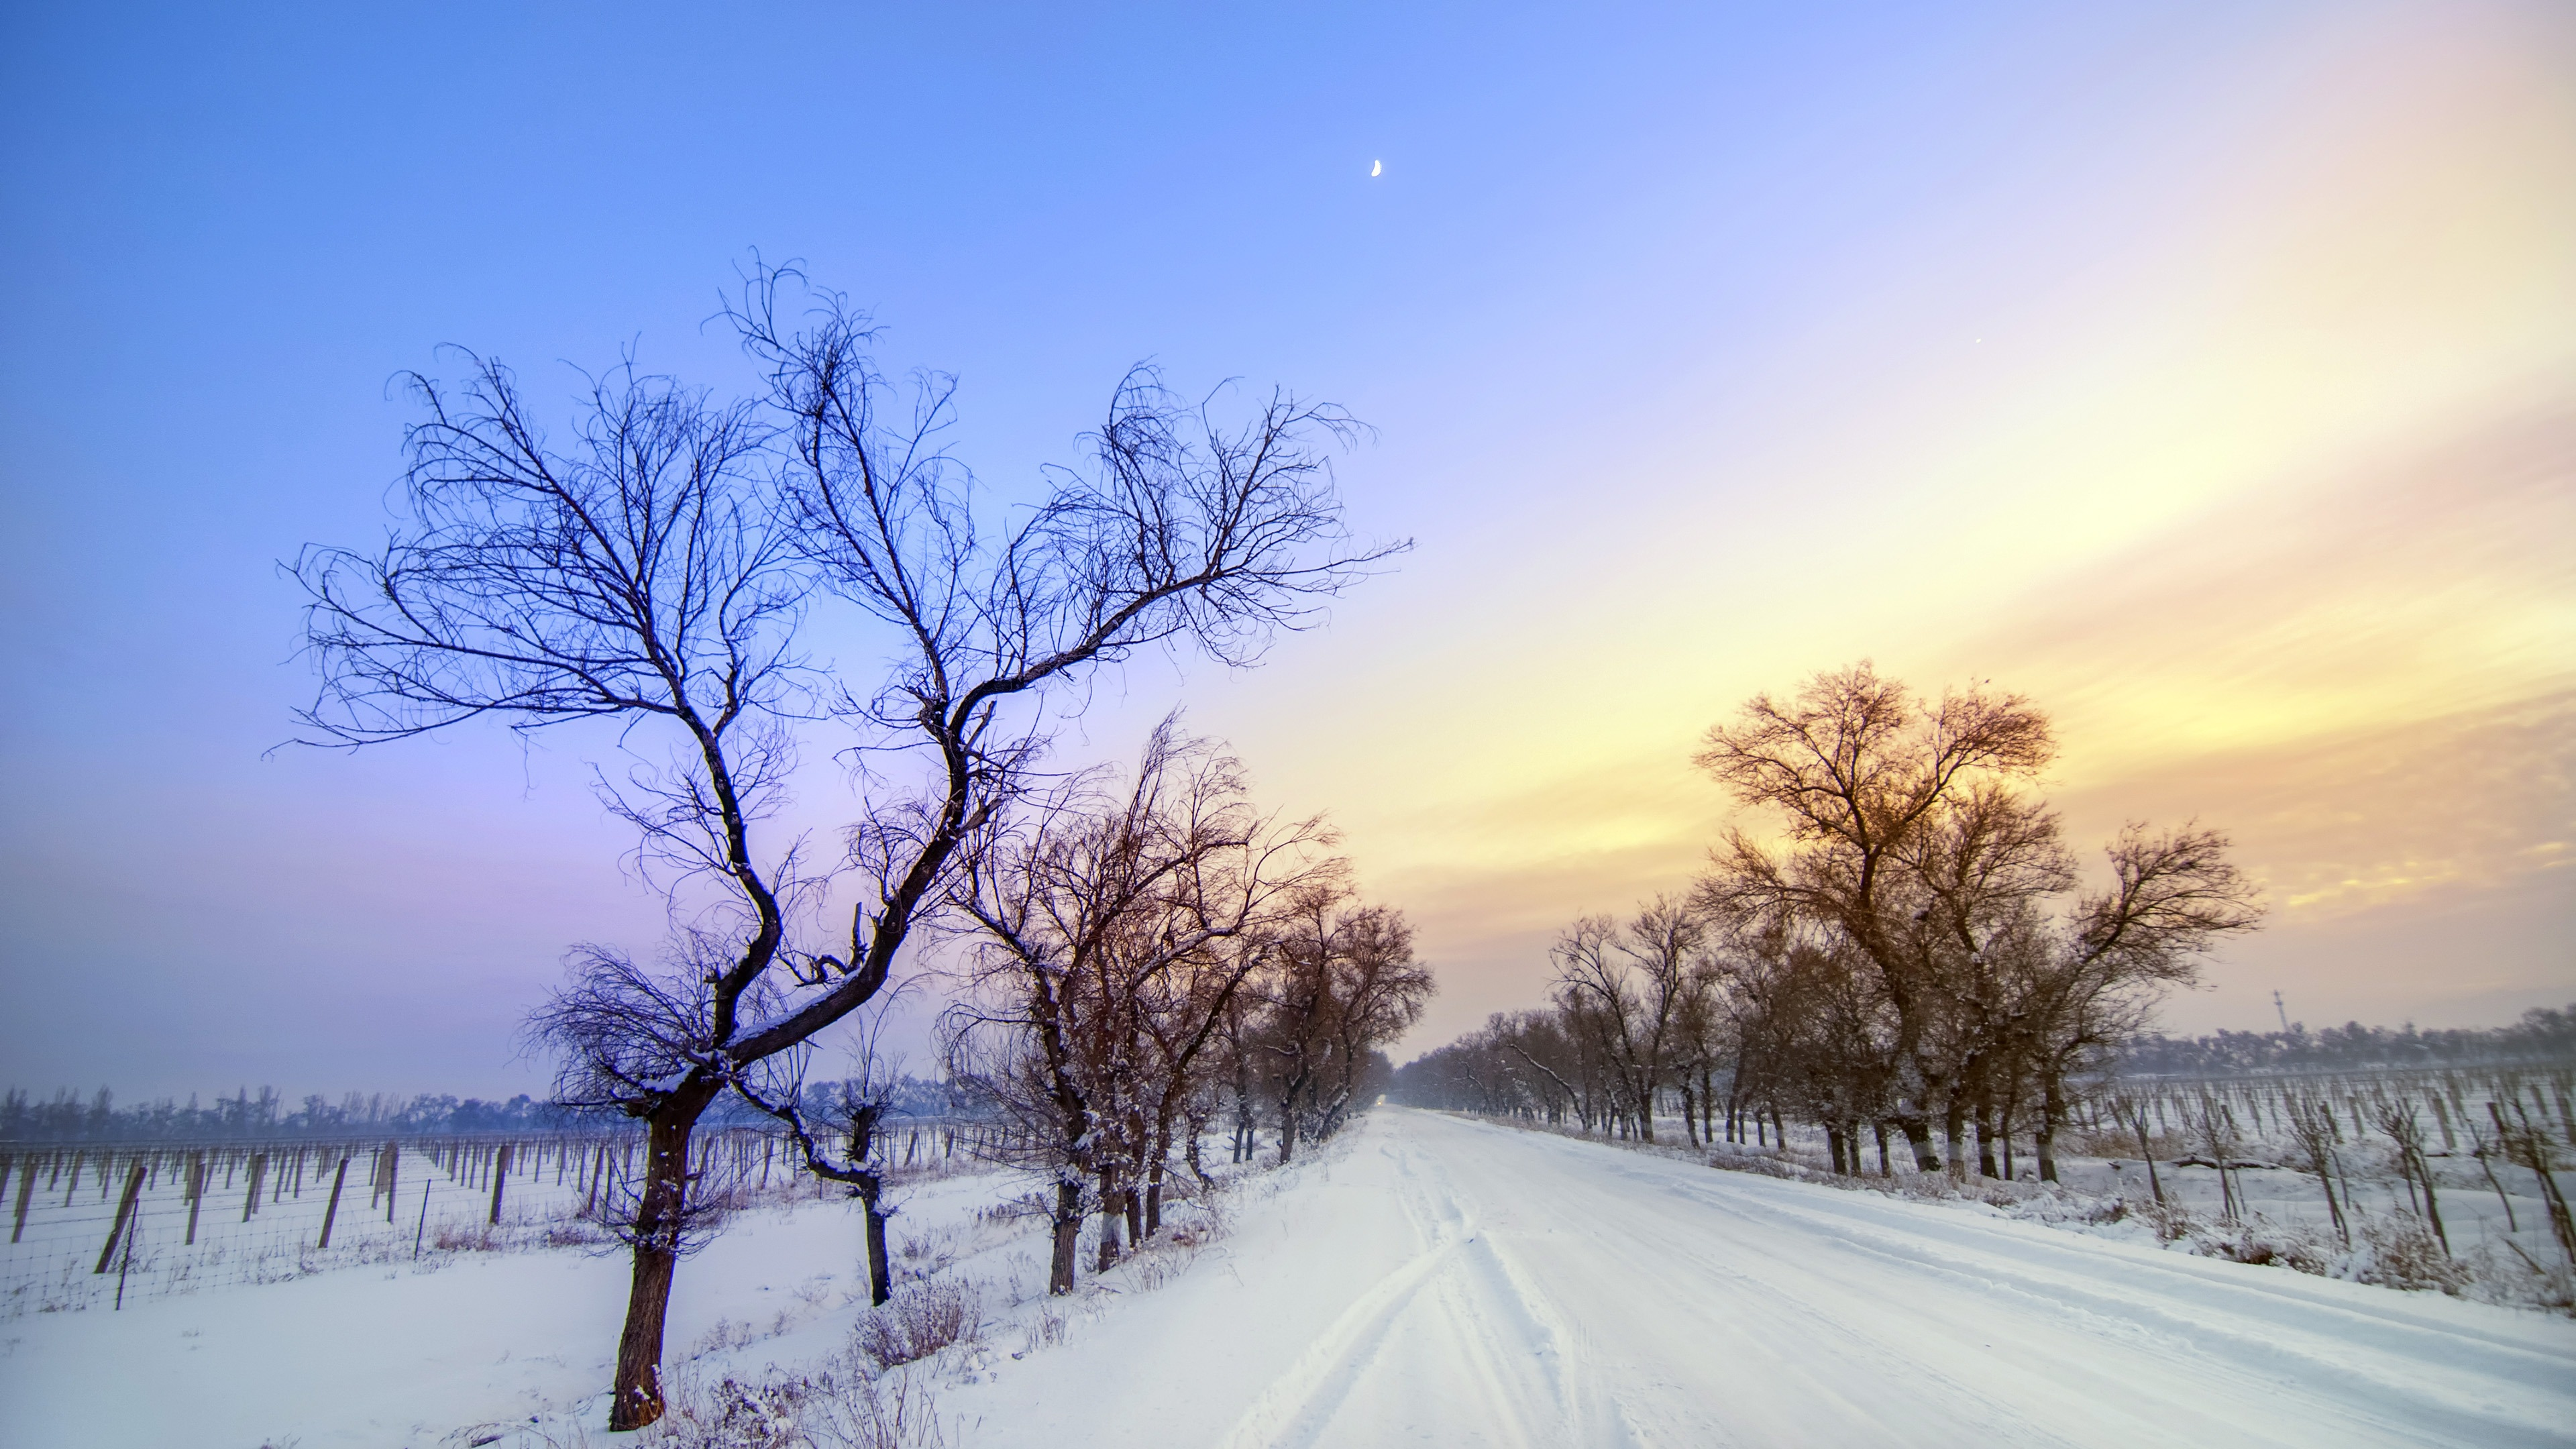 4k ultra hd wallpapers,snow,winter,sky,natural landscape,nature